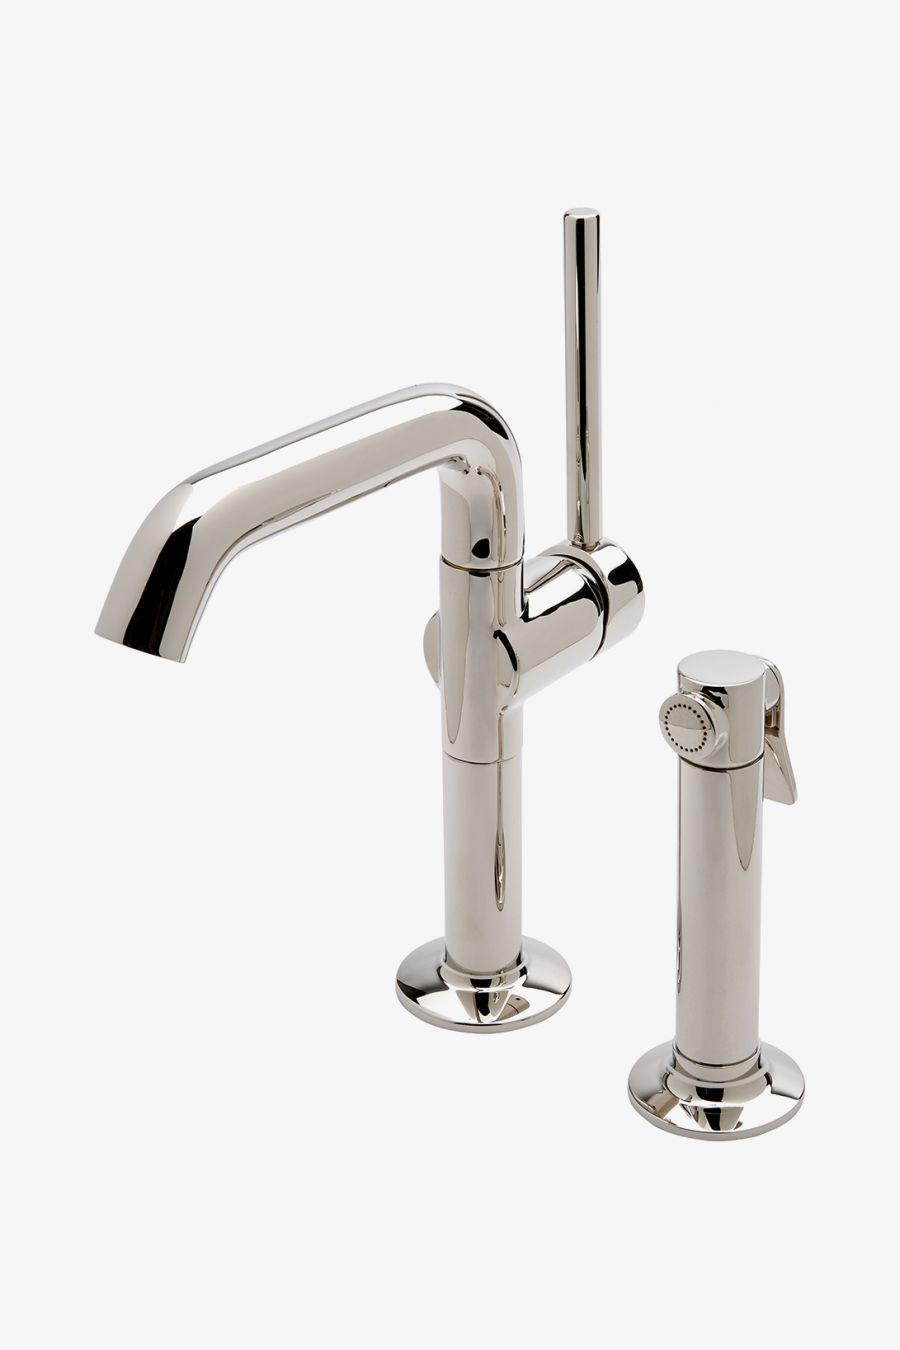 25 One Hole High Profile Kitchen Faucet